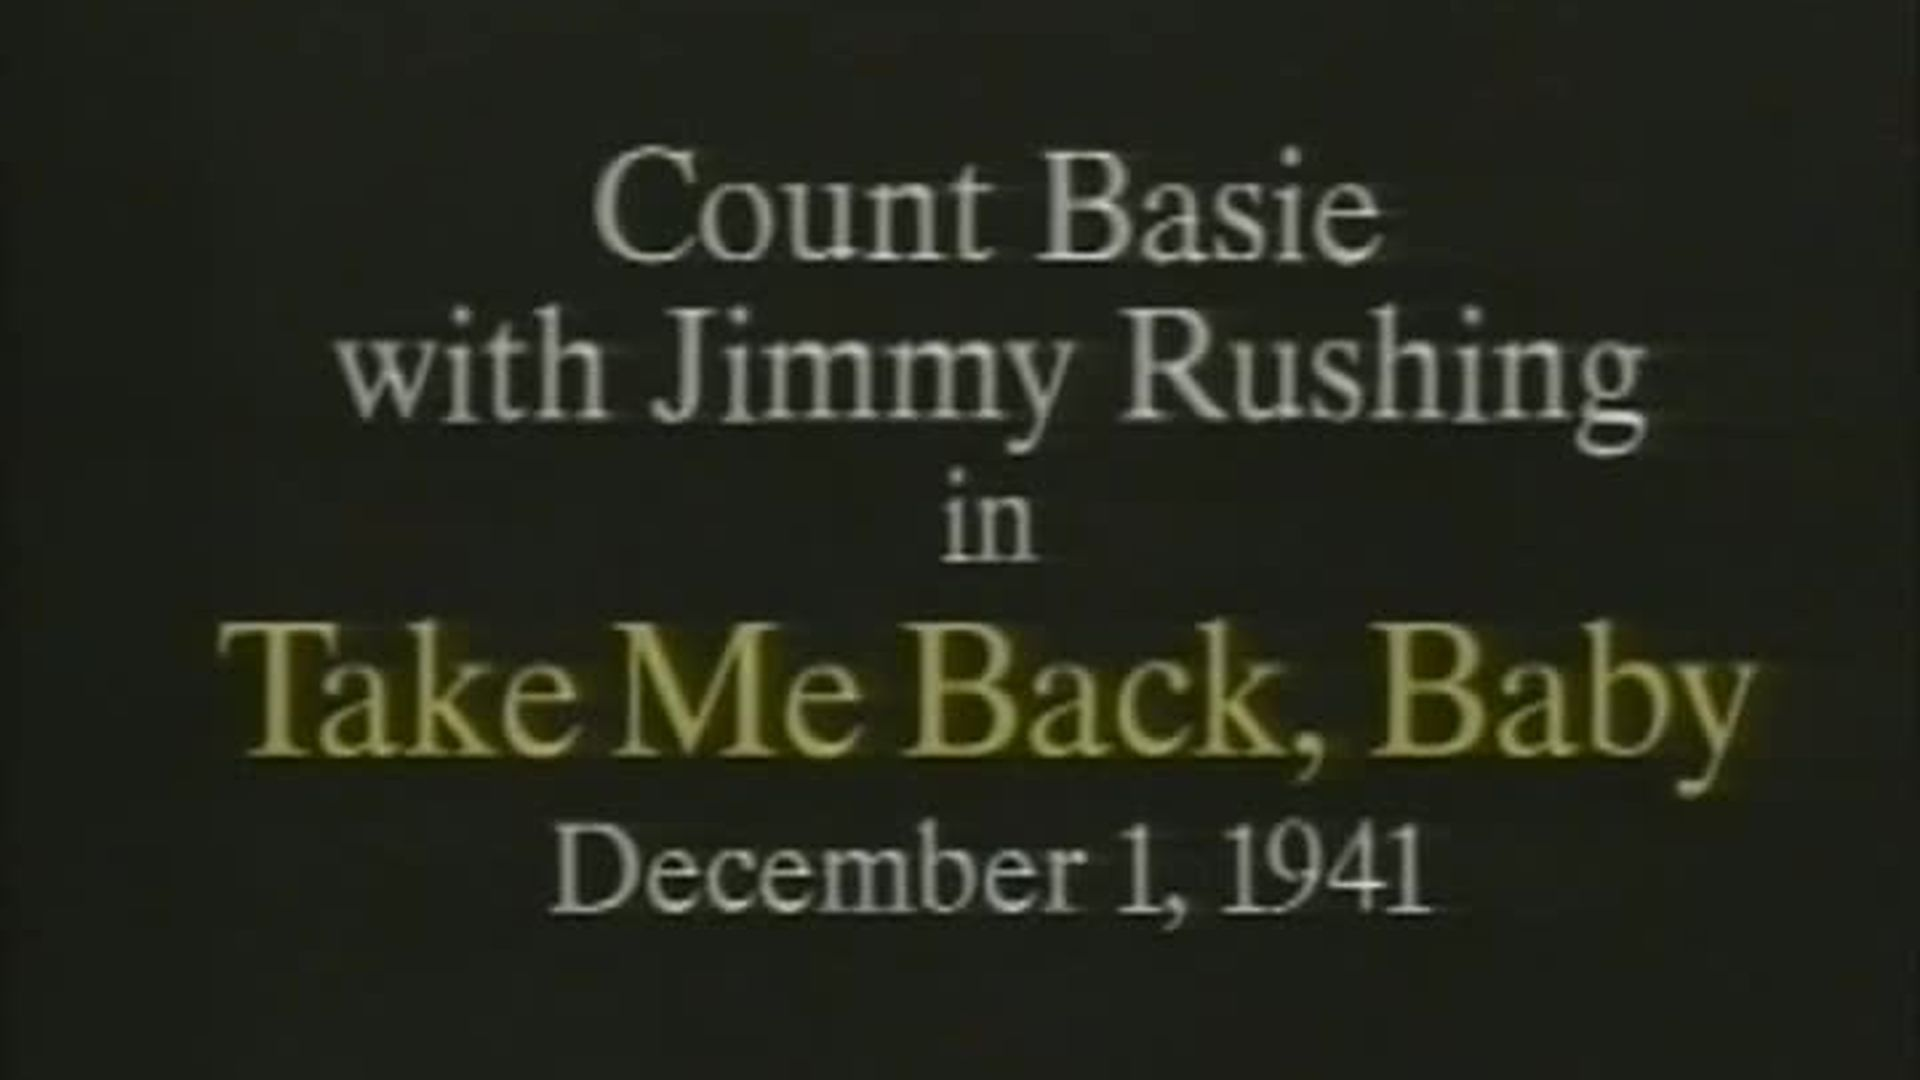 Count Basie - Take Me Back Baby